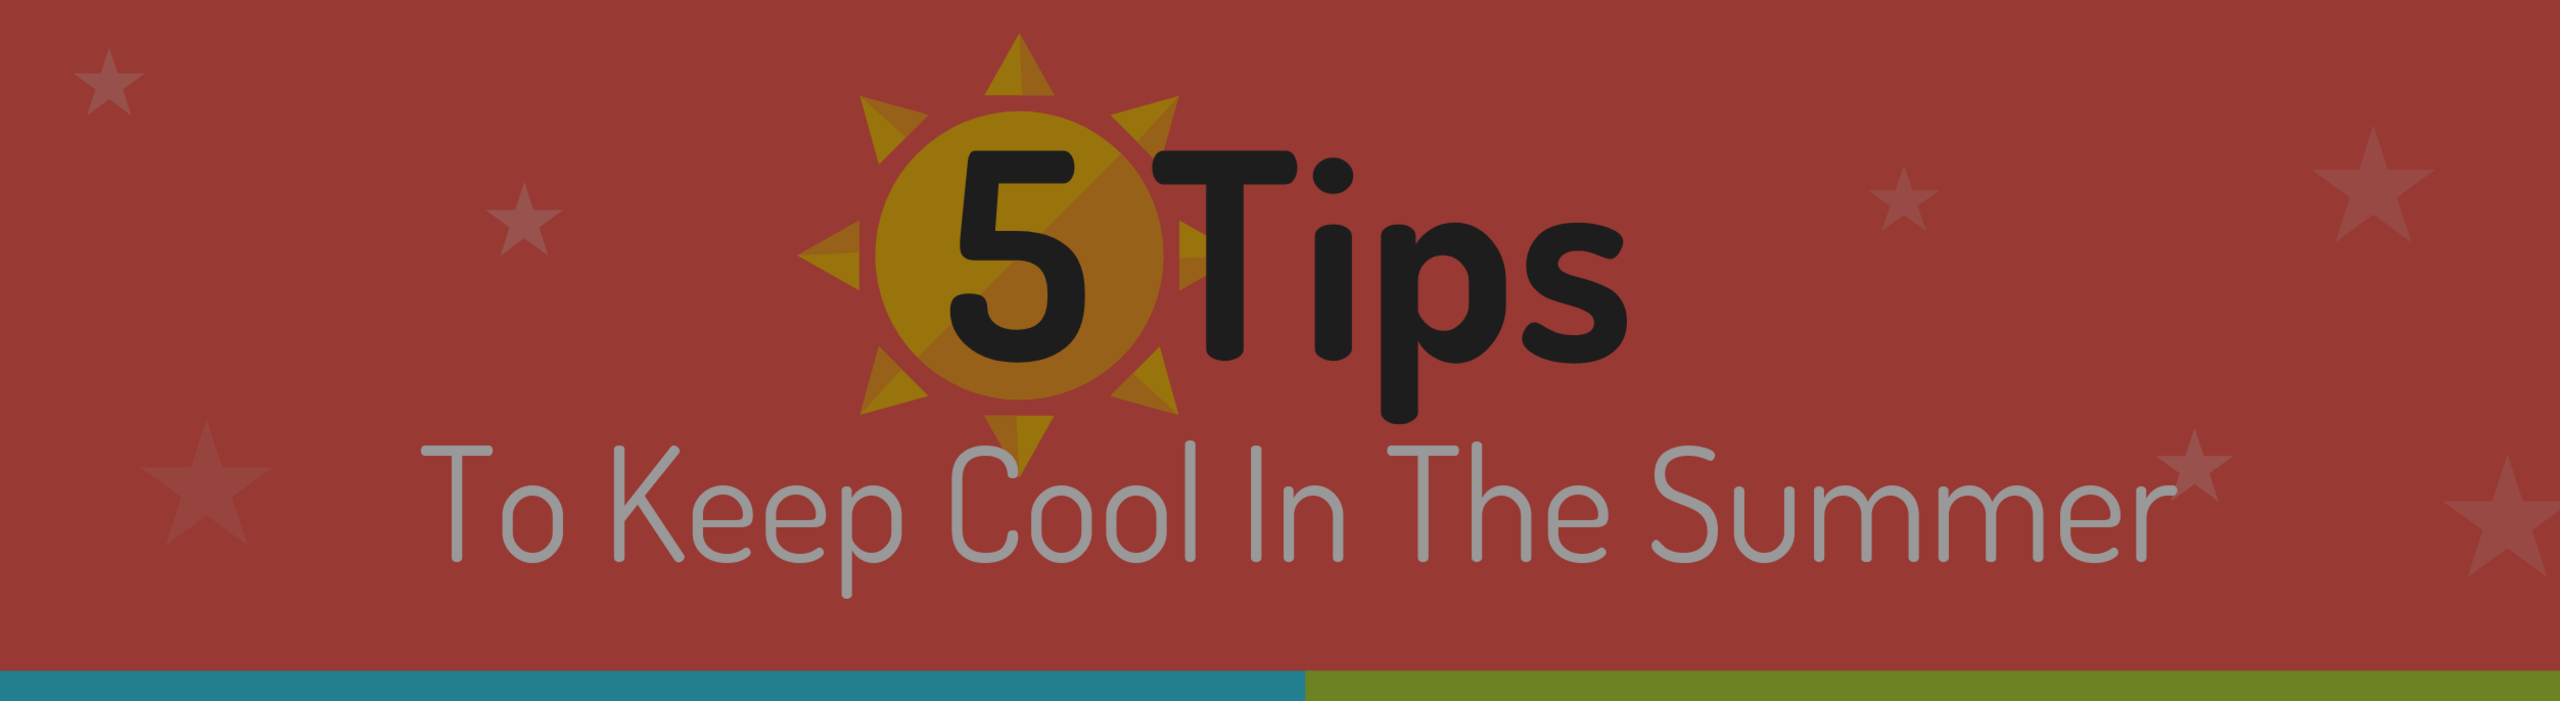 Keep Cool This Summer!